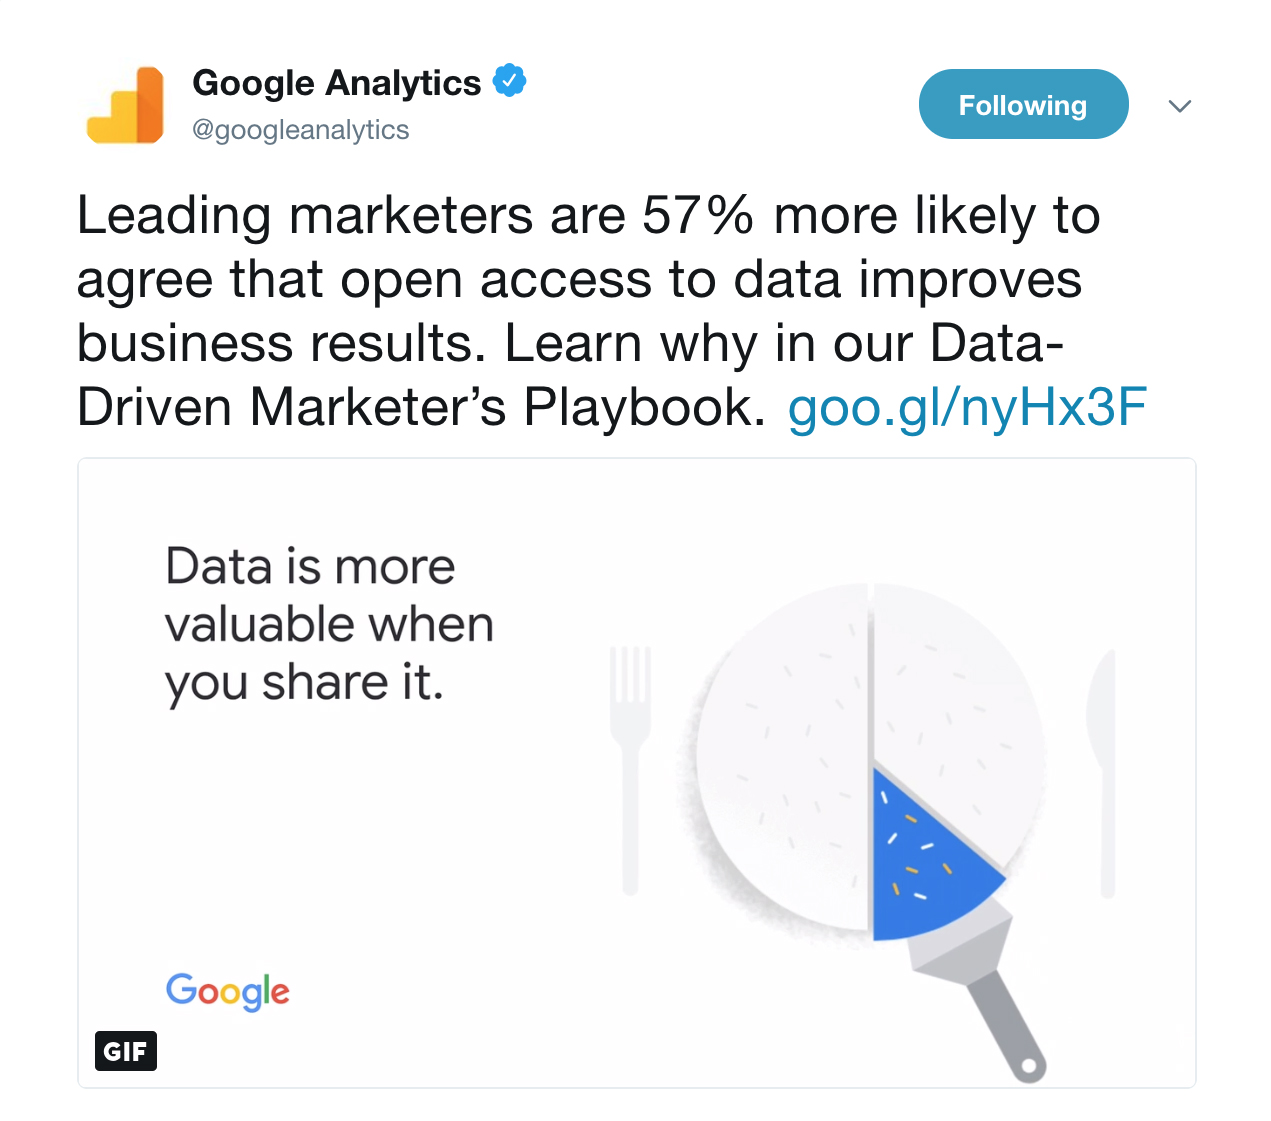 google-analytics-tweet-9.jpg